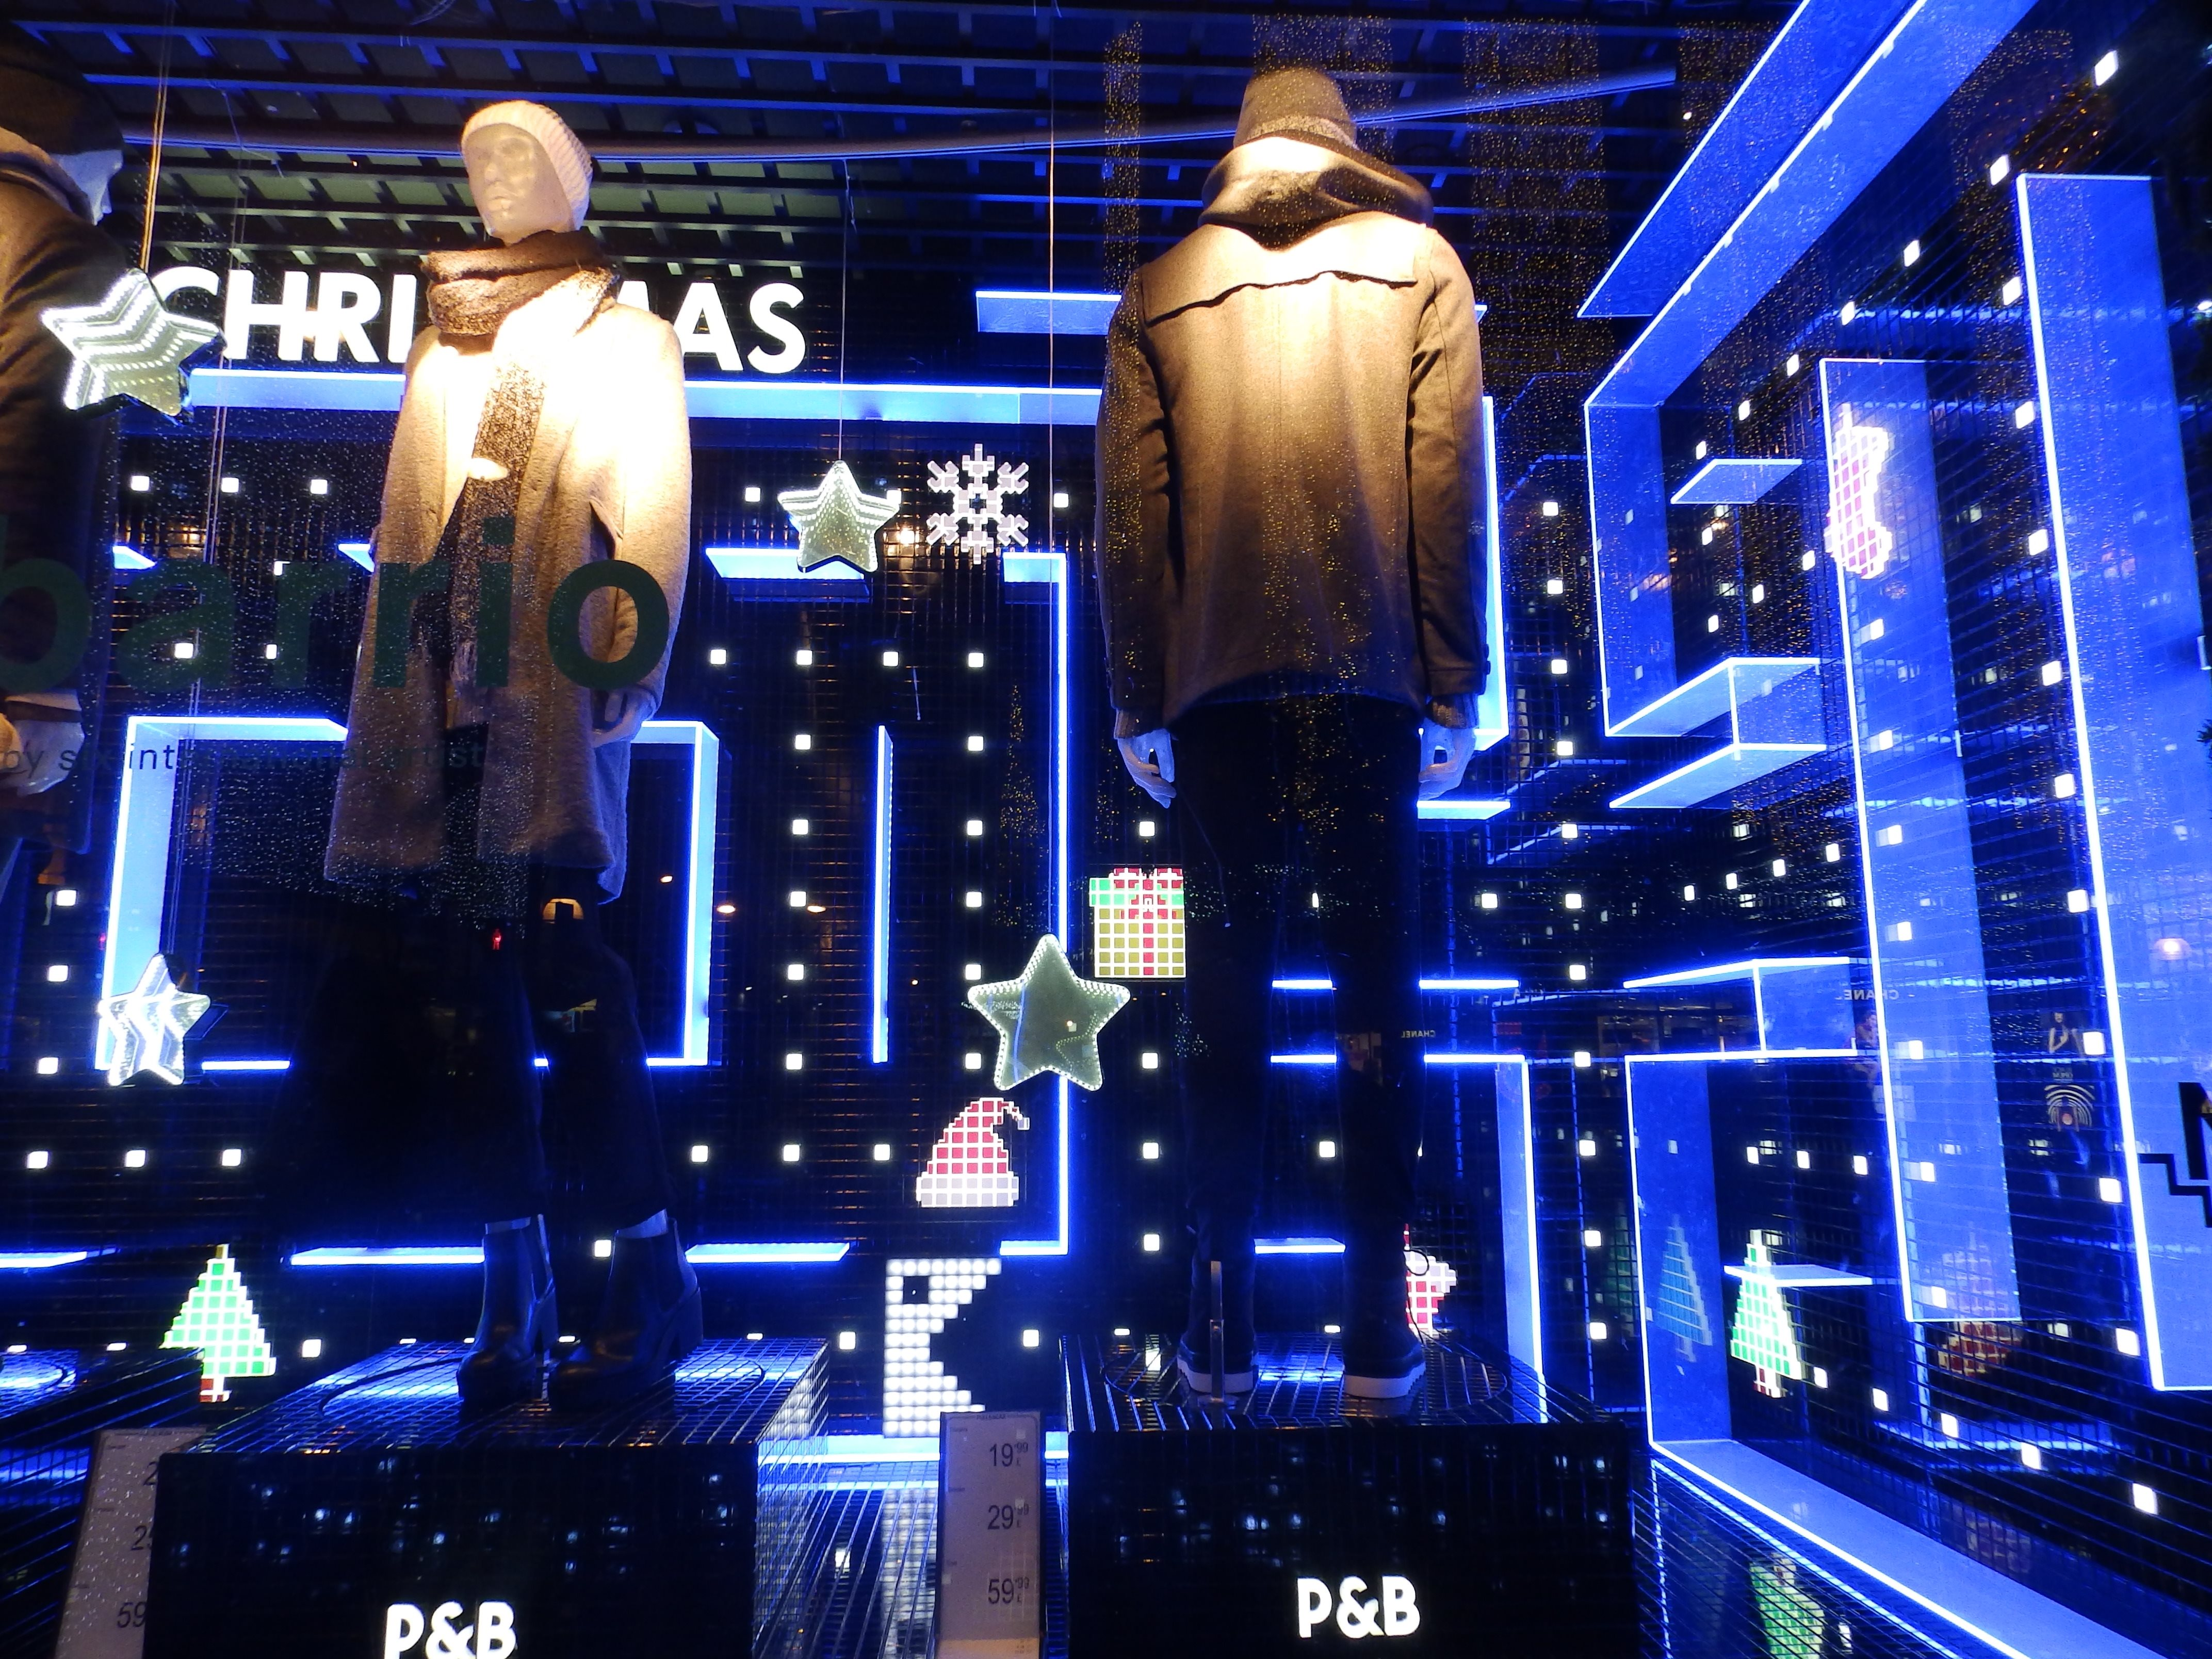 Window display for Pull and Bear | Courtesy of Andrea Fiorini